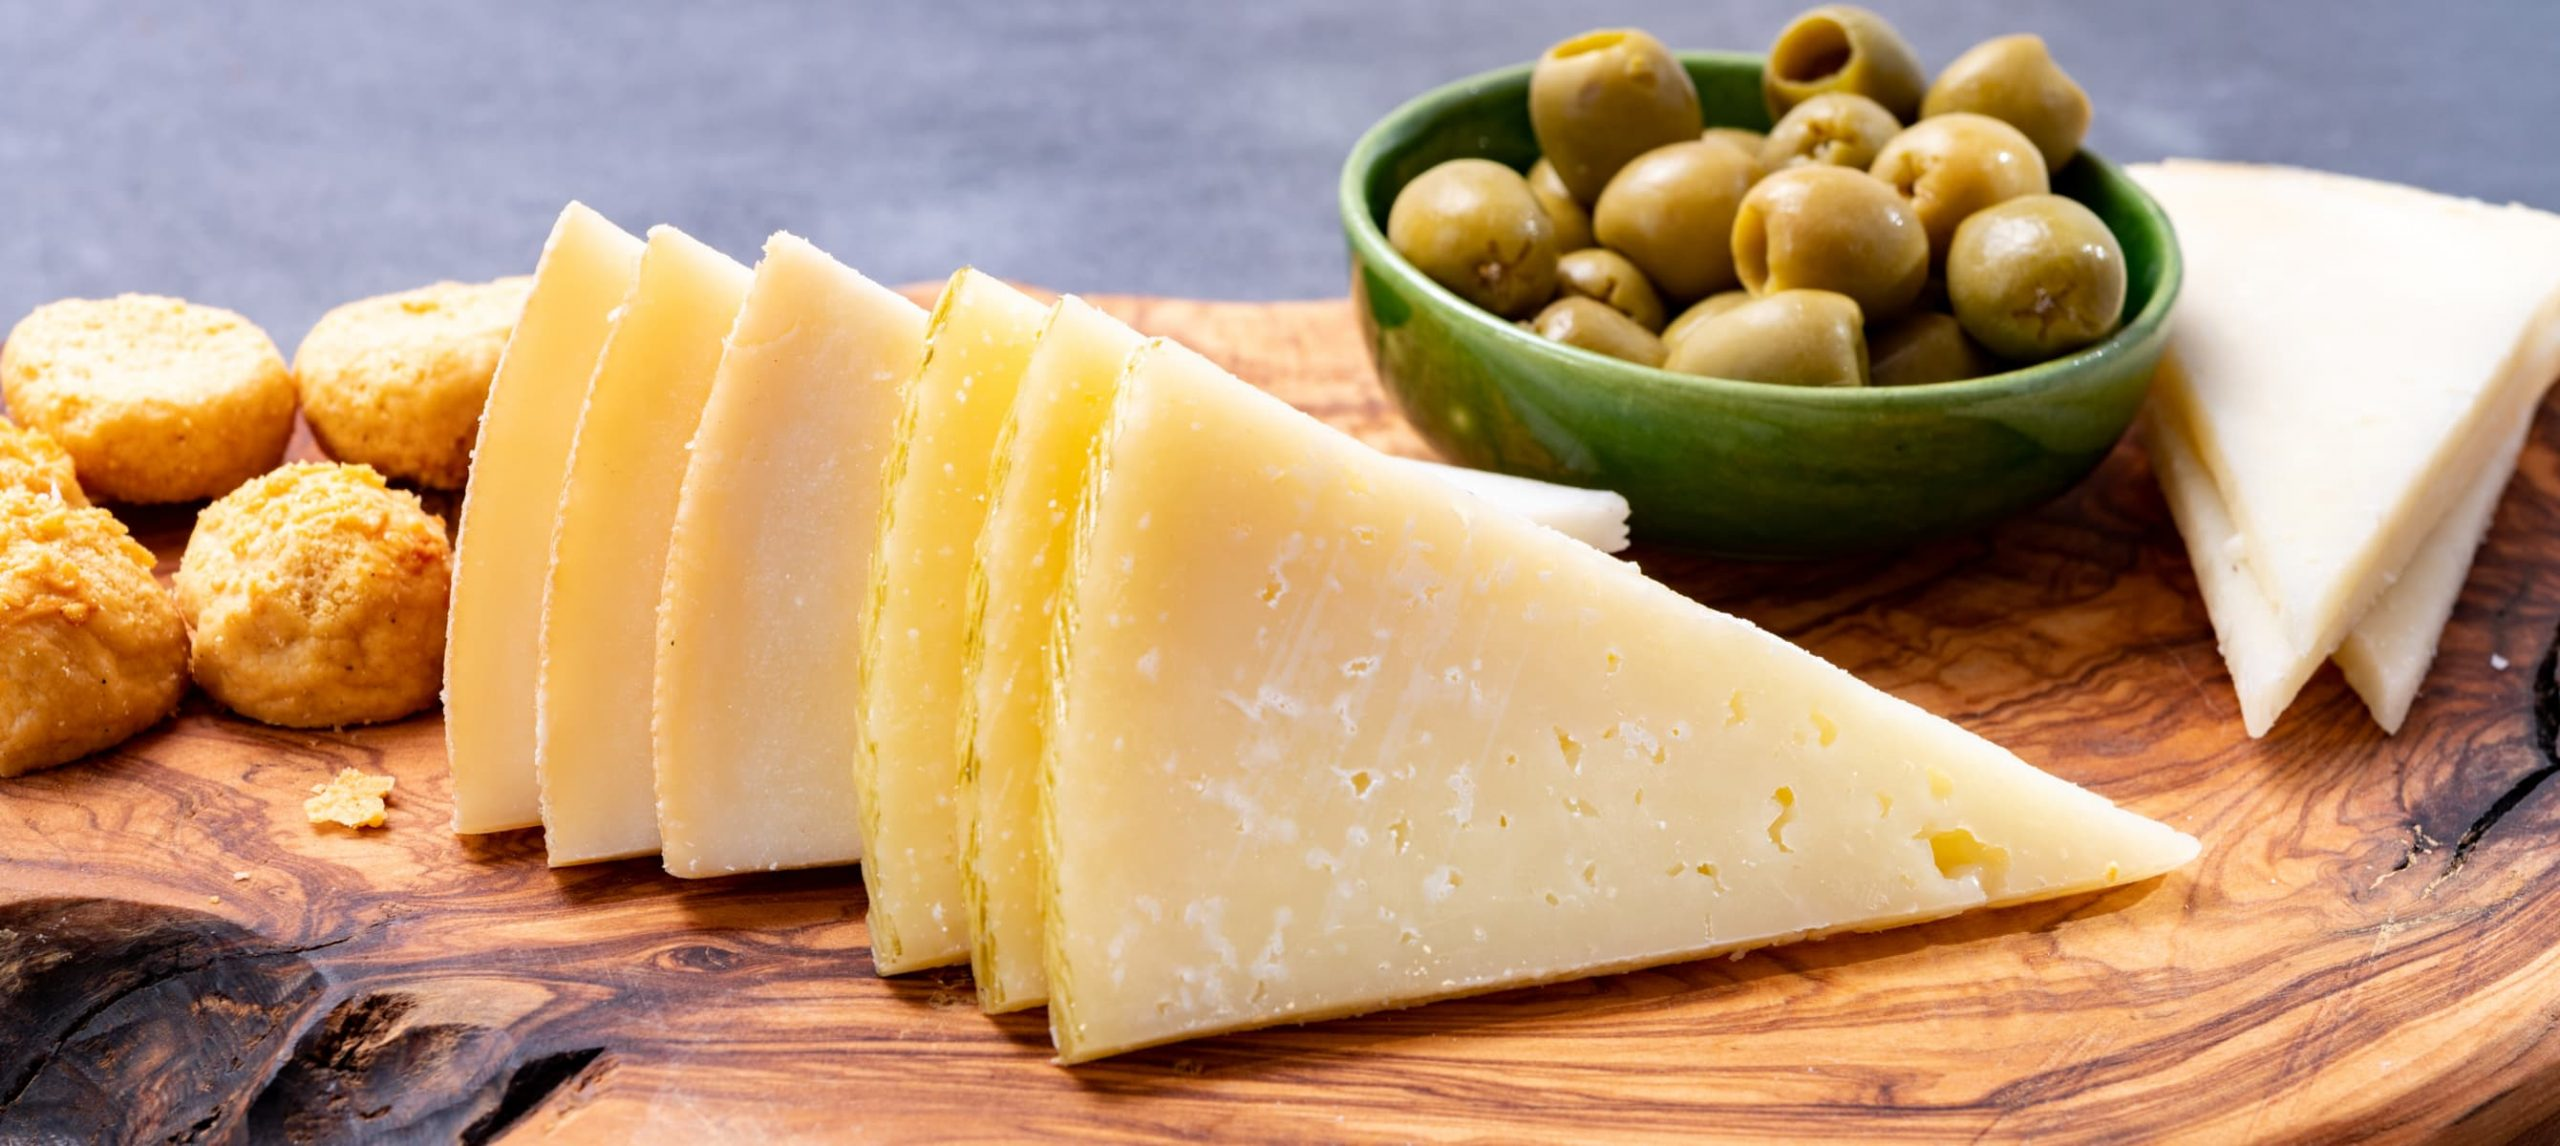 The 10 Best Spanish Cheese You Should Try